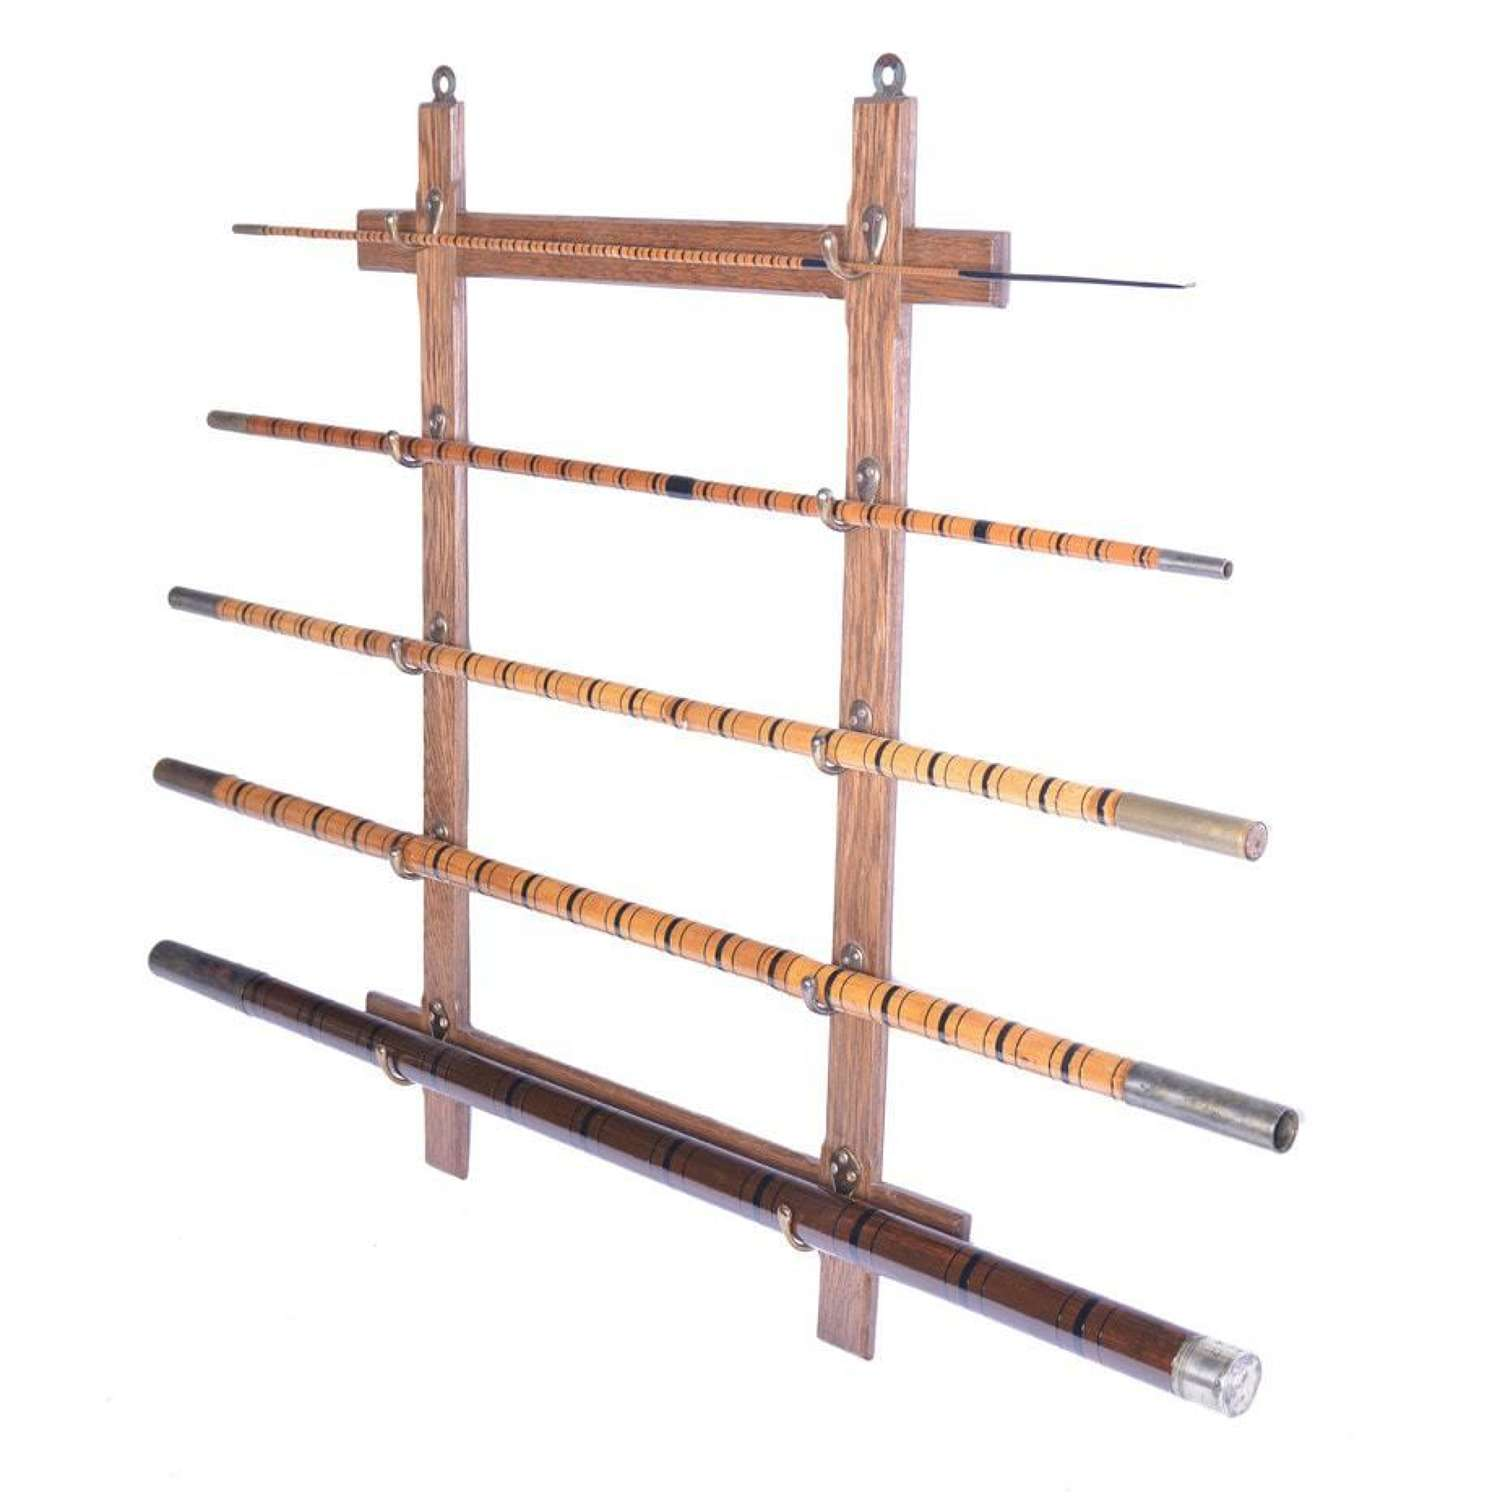 19th Century bamboo fishing rod or roach pole - by Sowerbutts